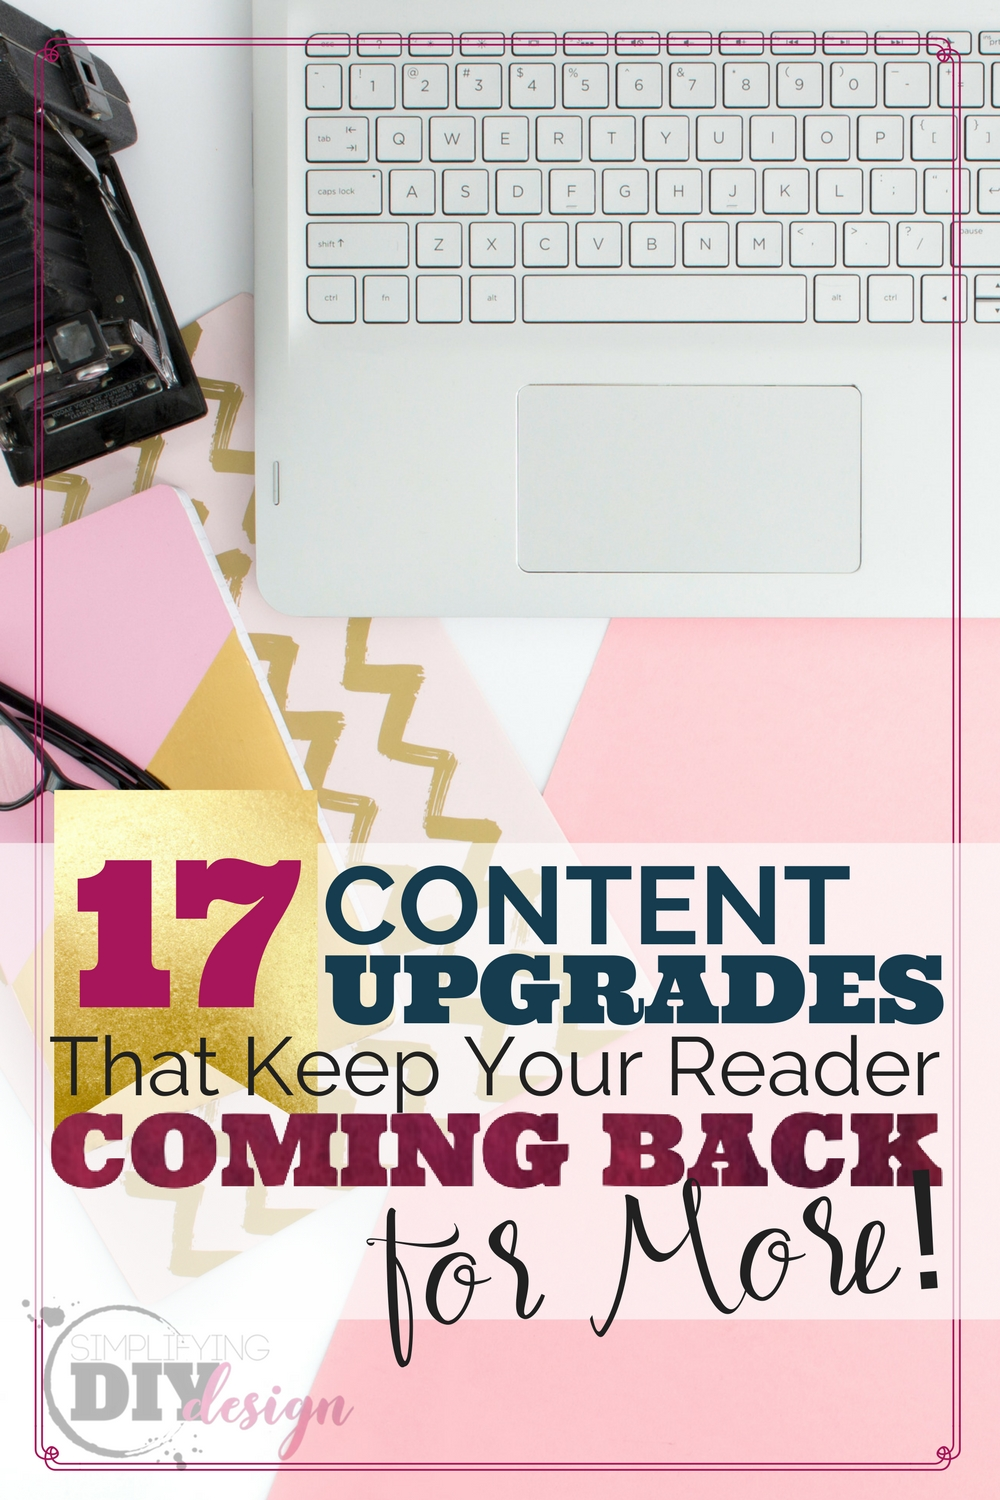 Awesome, so many things on this list have my brain sparked!! Ideas for content upgrades are coming to me like crazy, I'm so excited to grow my email list with these!!